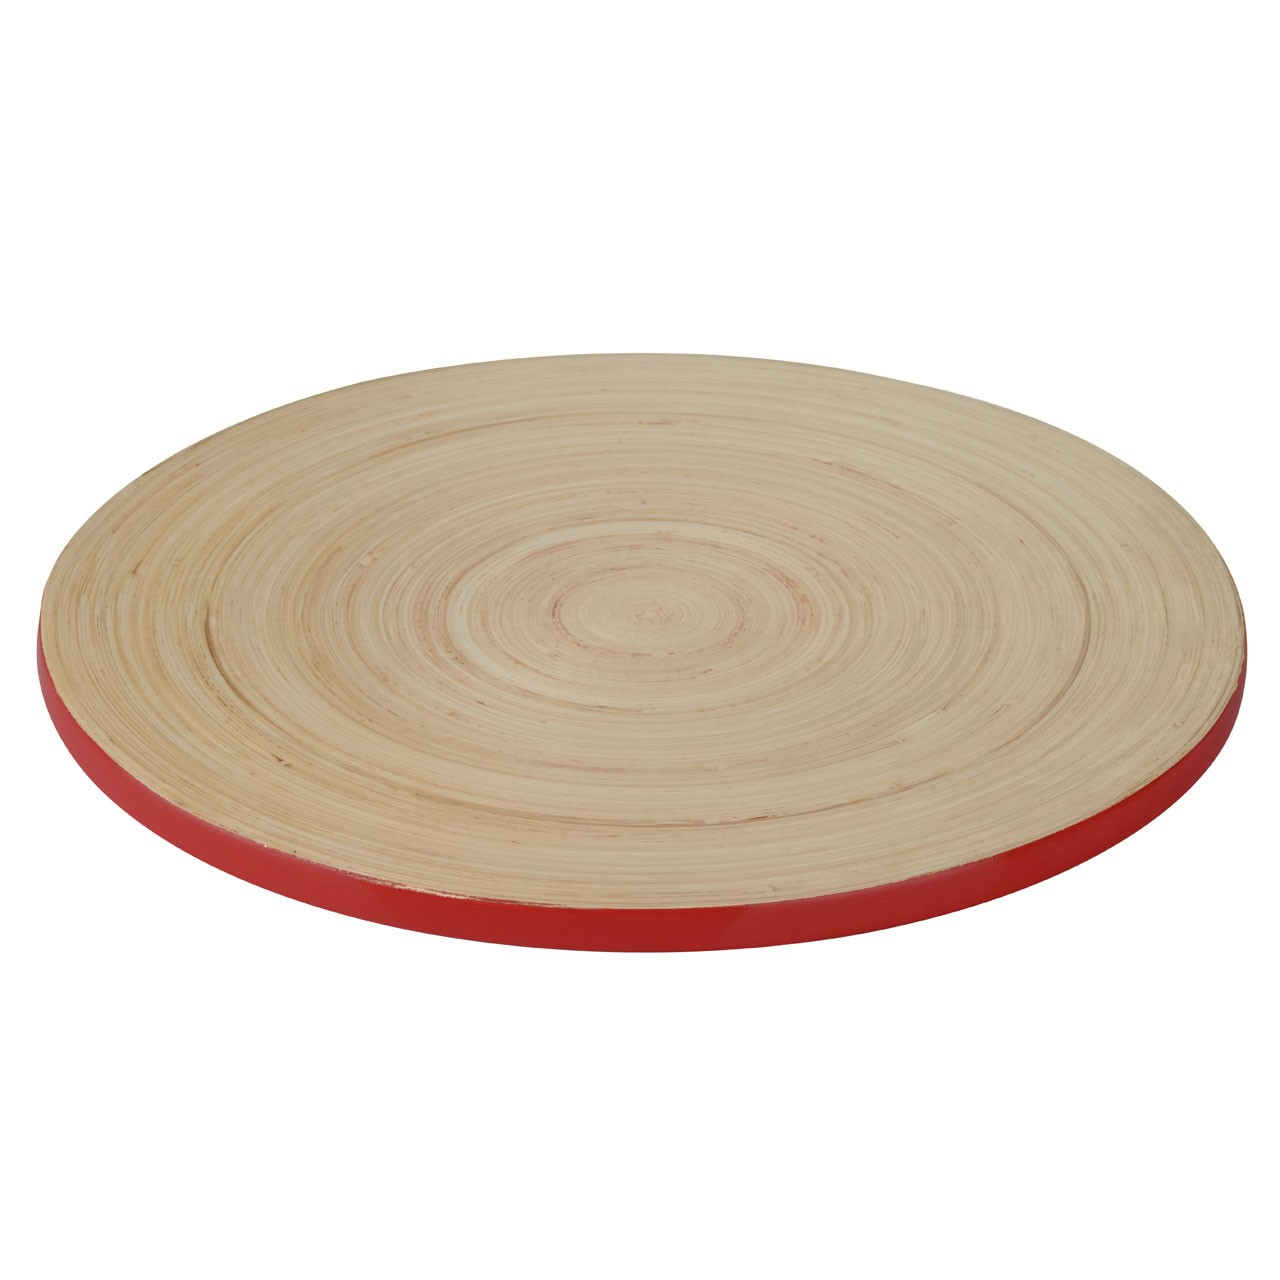 Kyoto Spun Bamboo Placemat - Red